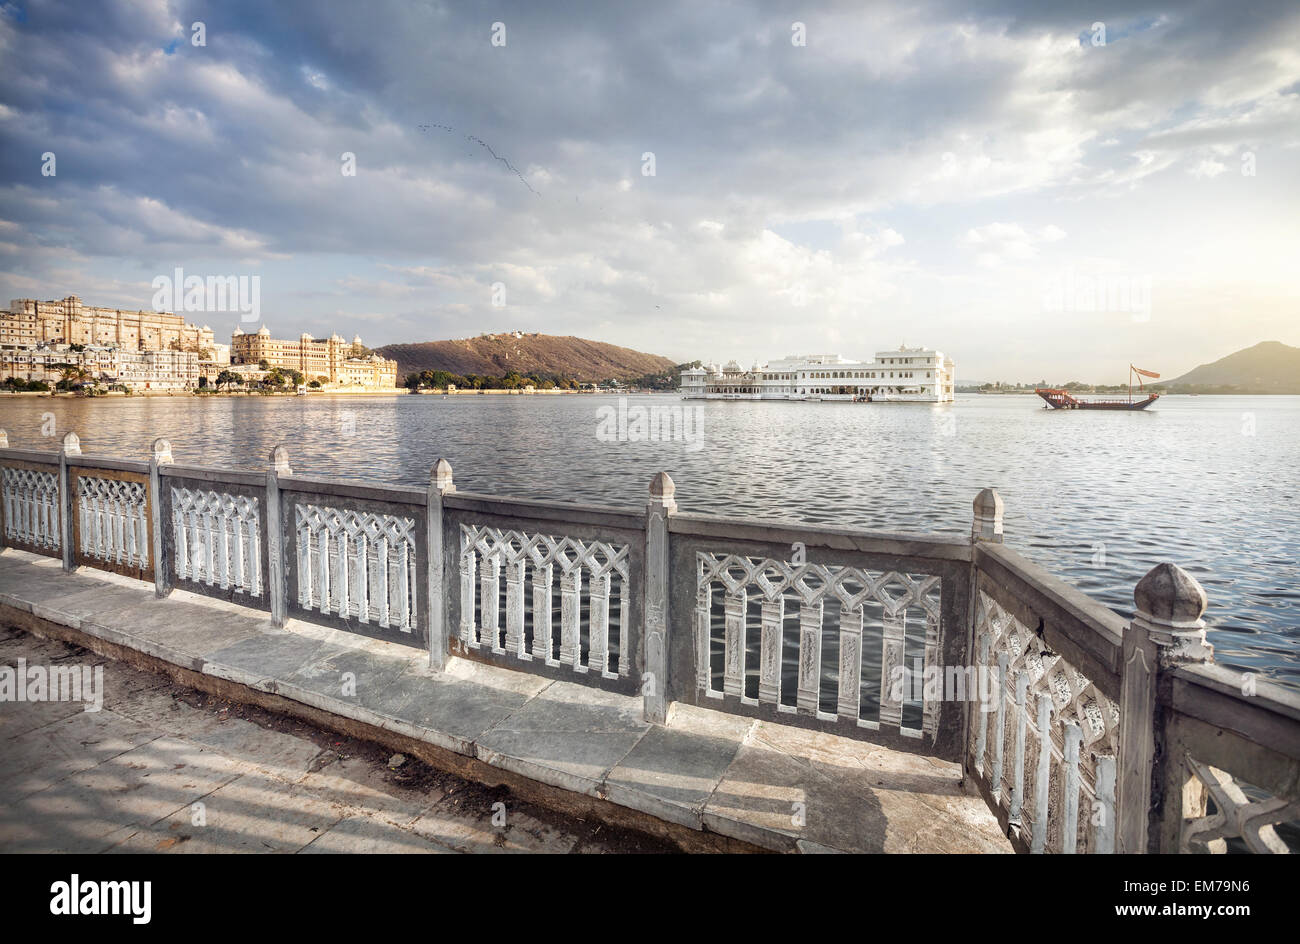 Lake Pichola with white palace in the center at cloudy sky in Udaipur, Rajasthan, India - Stock Image